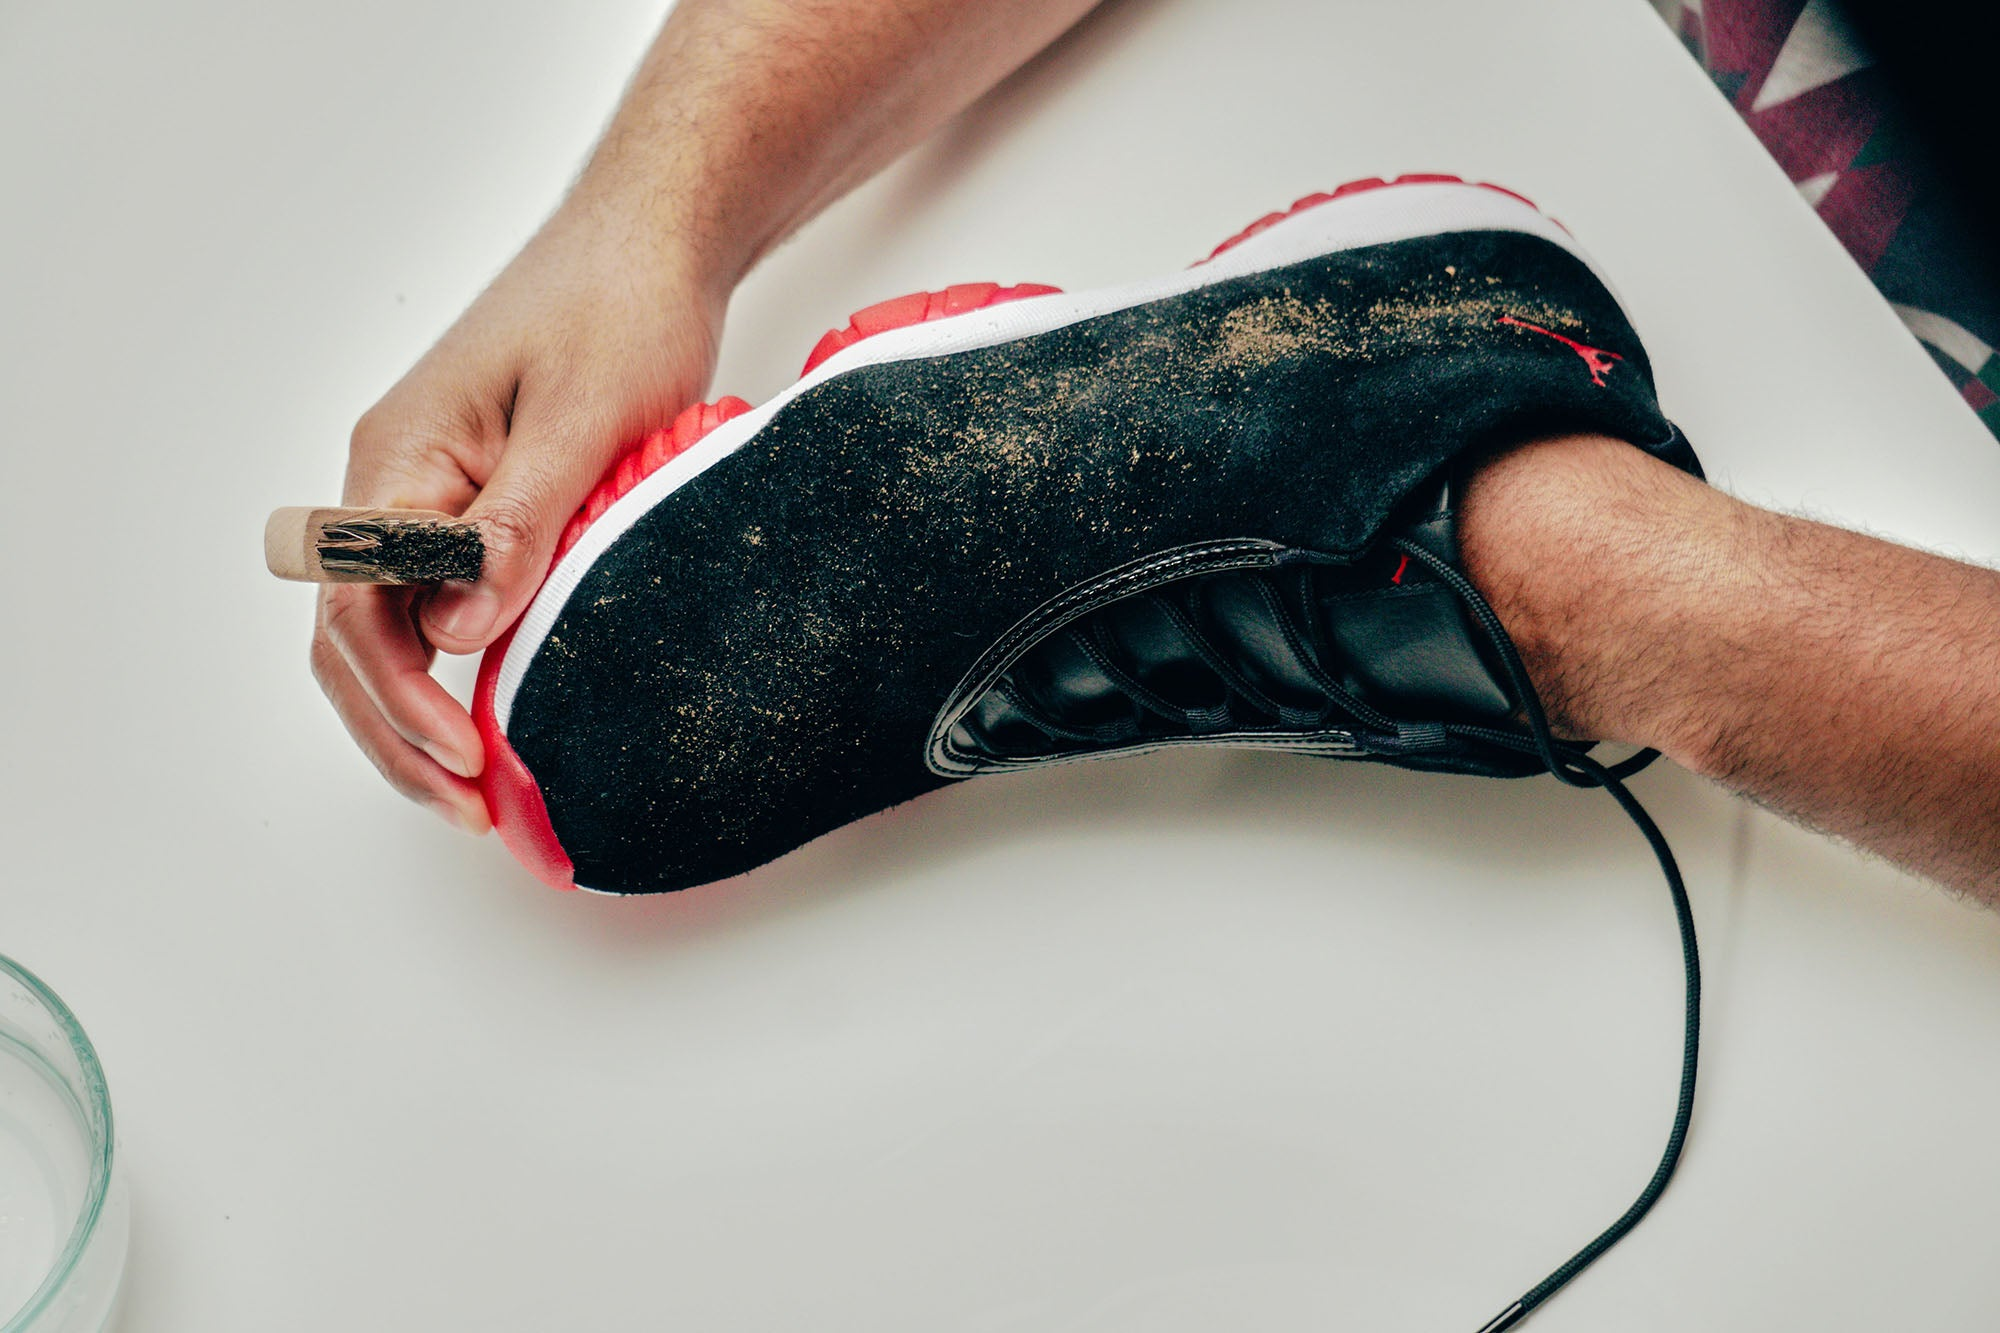 Jason Markk Sneaker Care 101 How to clean Suede shoes step 1